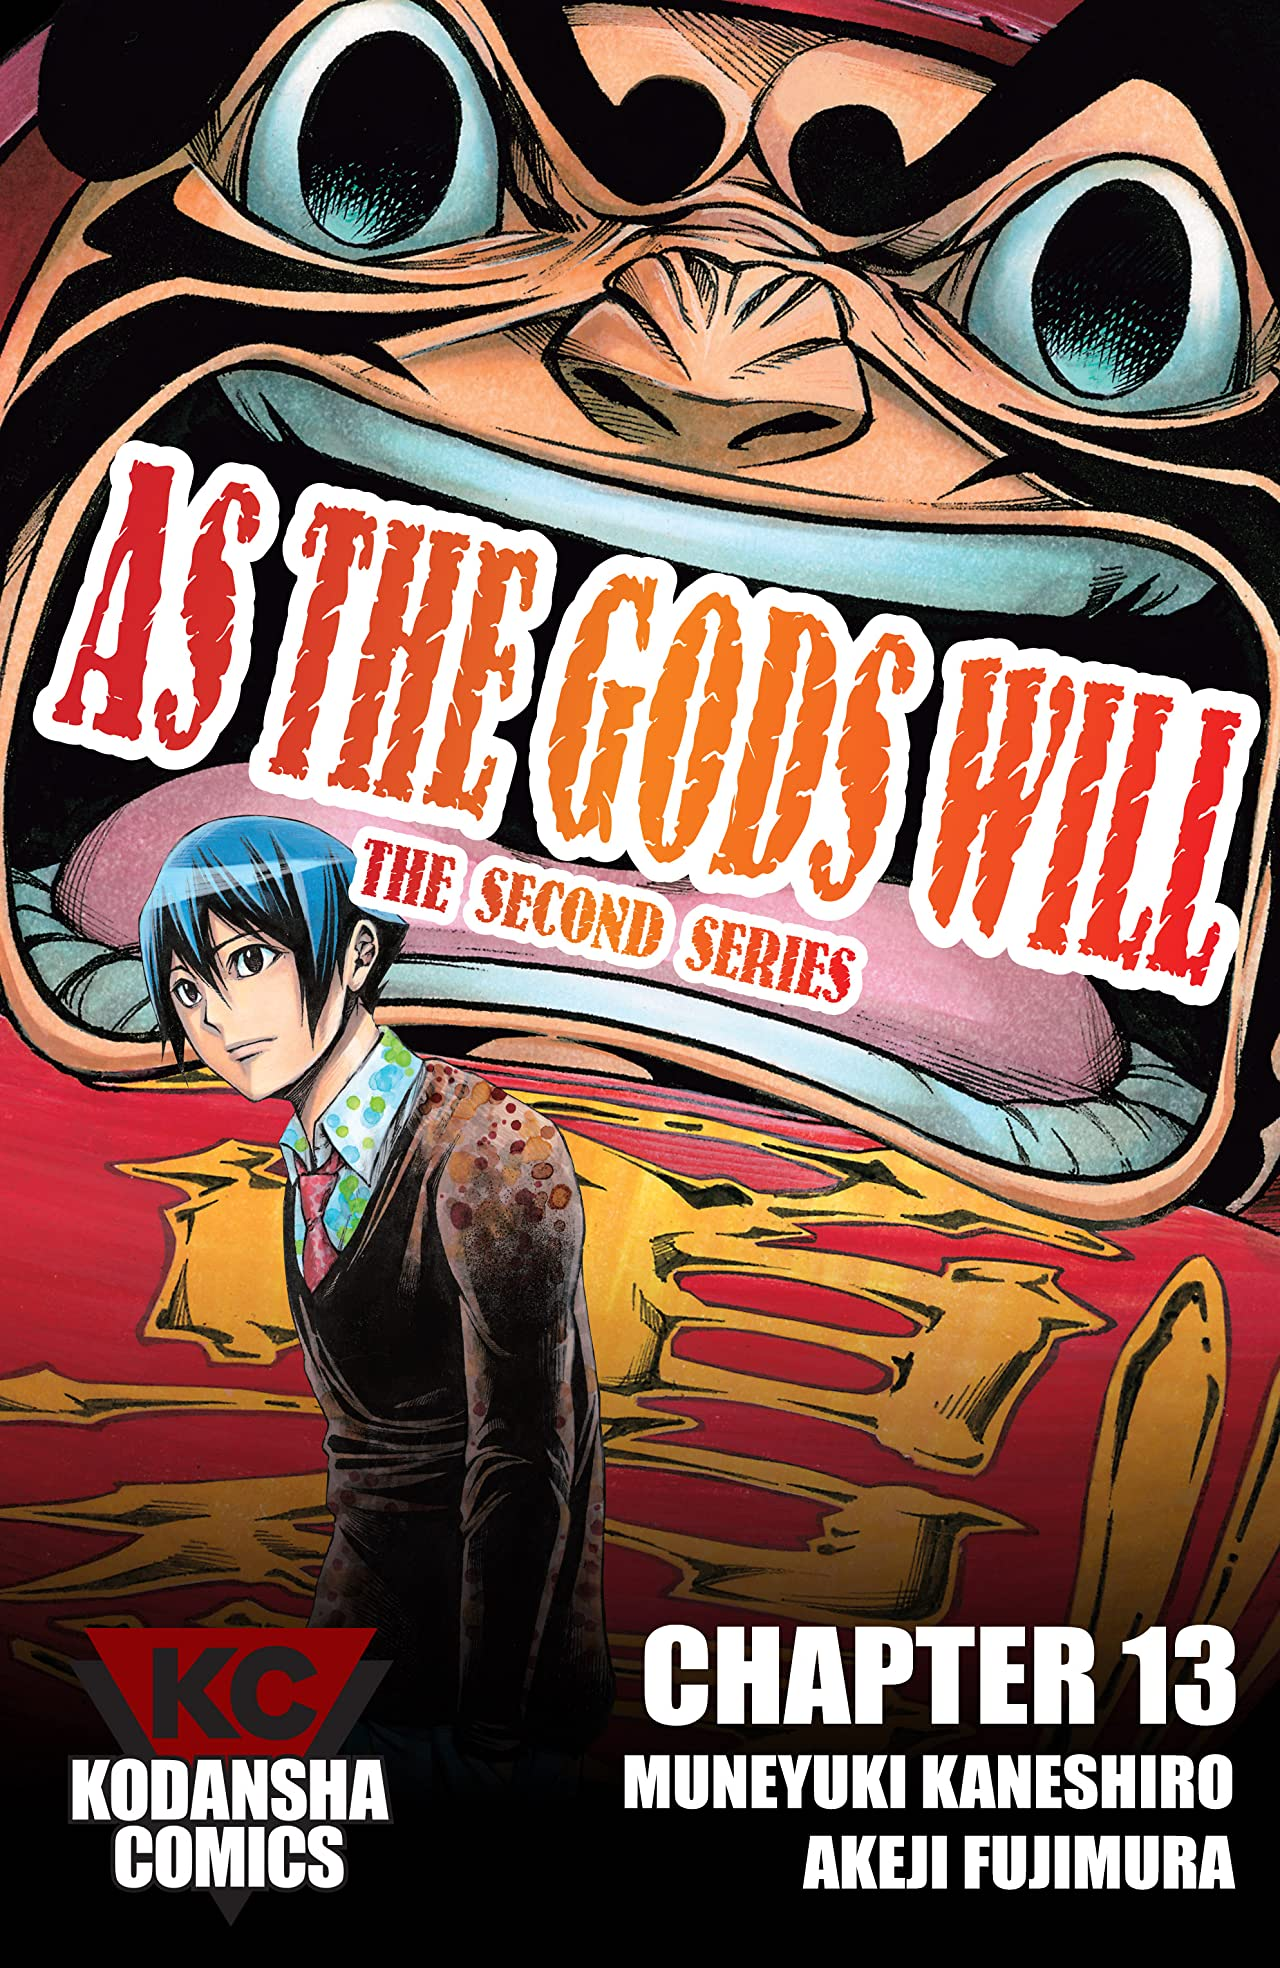 As The Gods Will: The Second Series #13